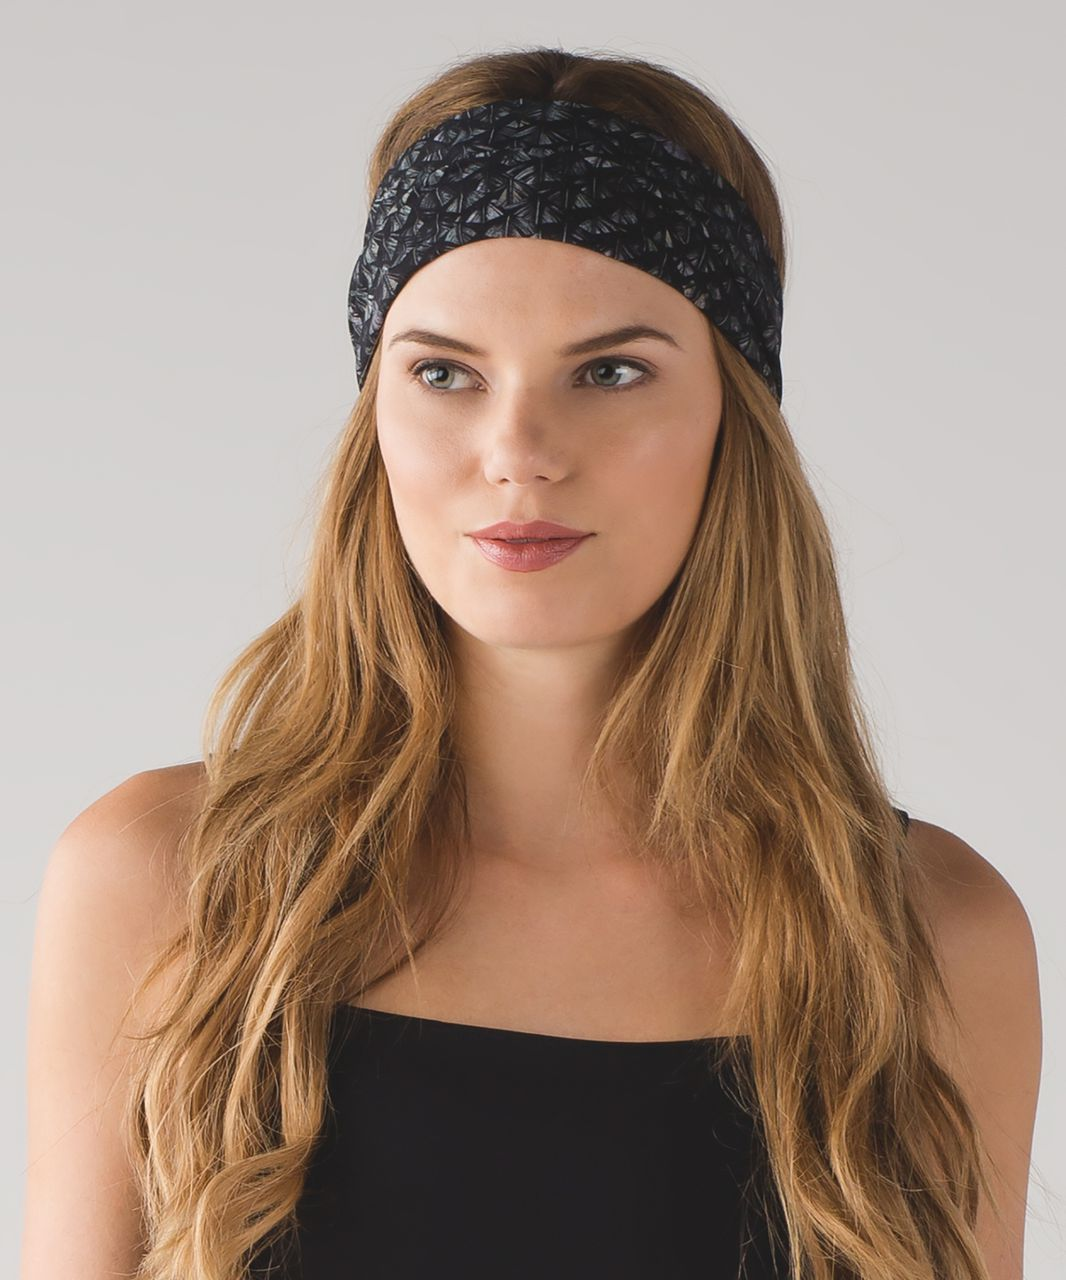 Lululemon Fringe Fighter Headband (Nulux) - Iridescent Multi Black